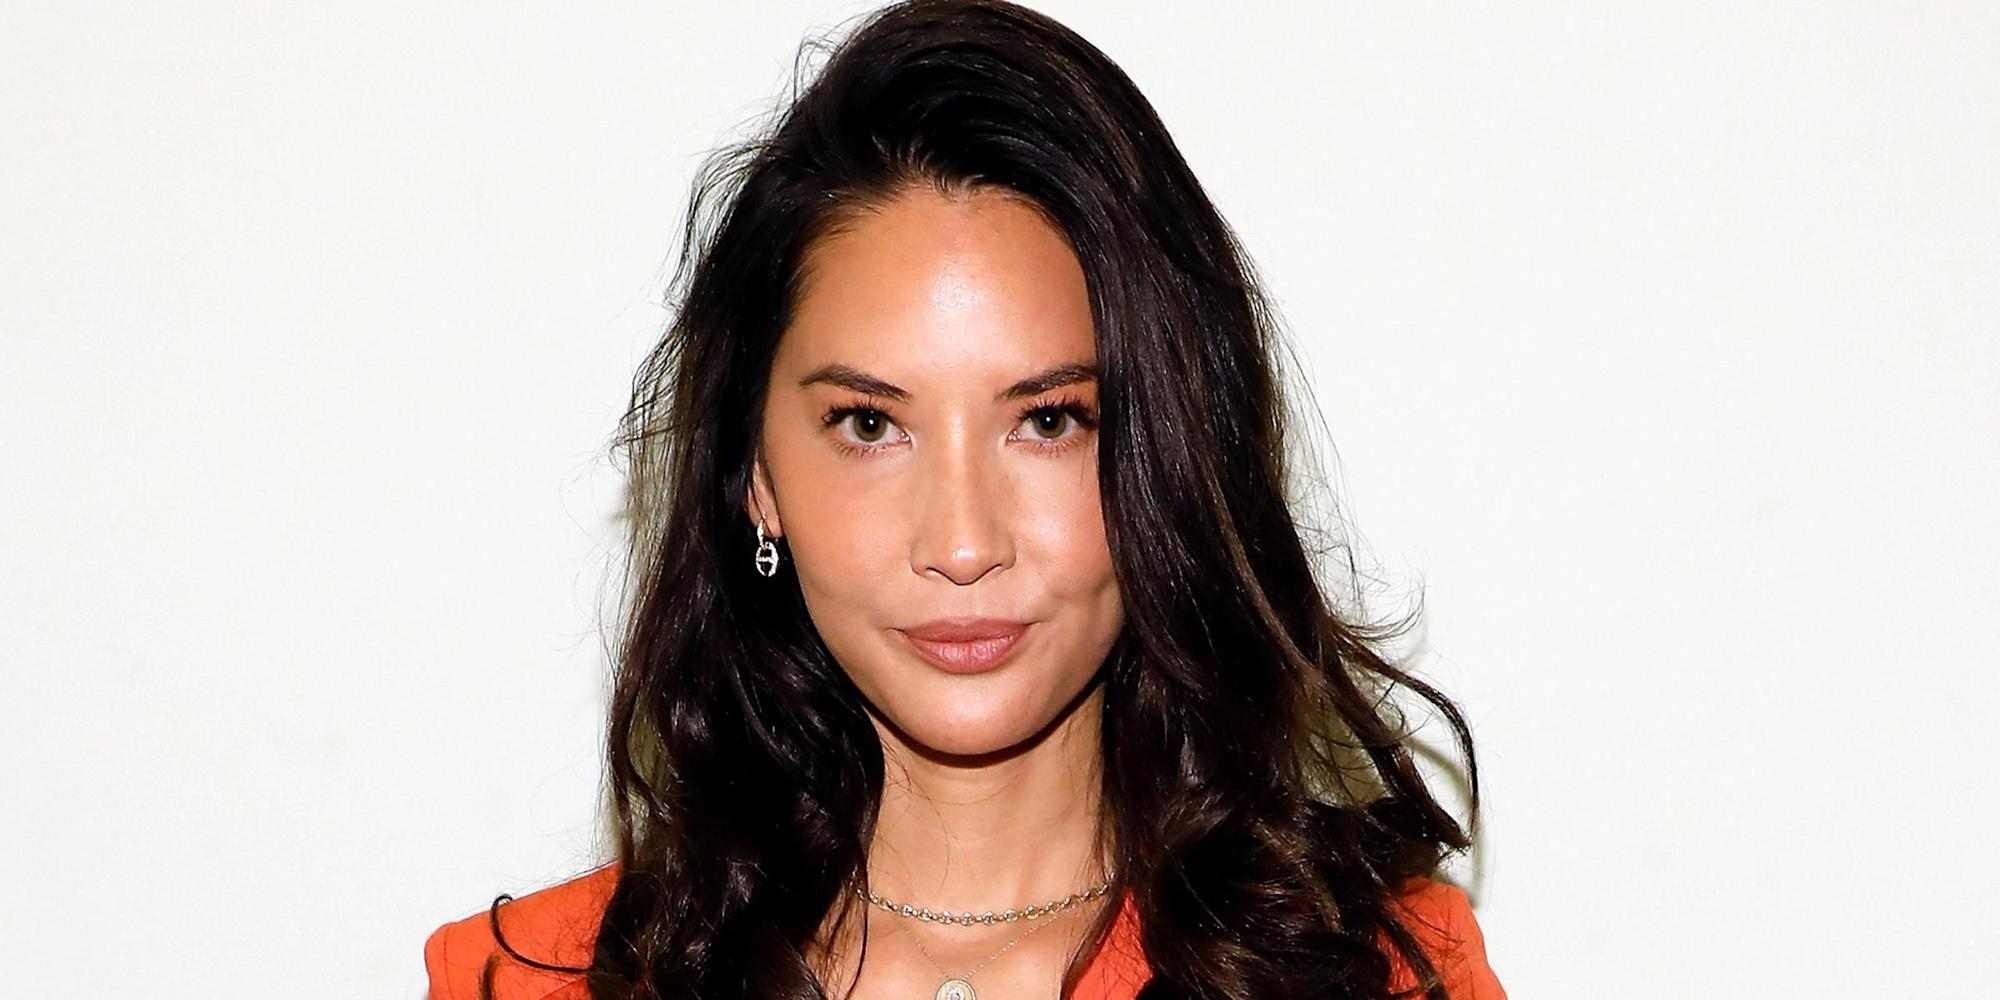 news.yahoo.com: Olivia Munn speaks out in wake of violence against Asian Americans